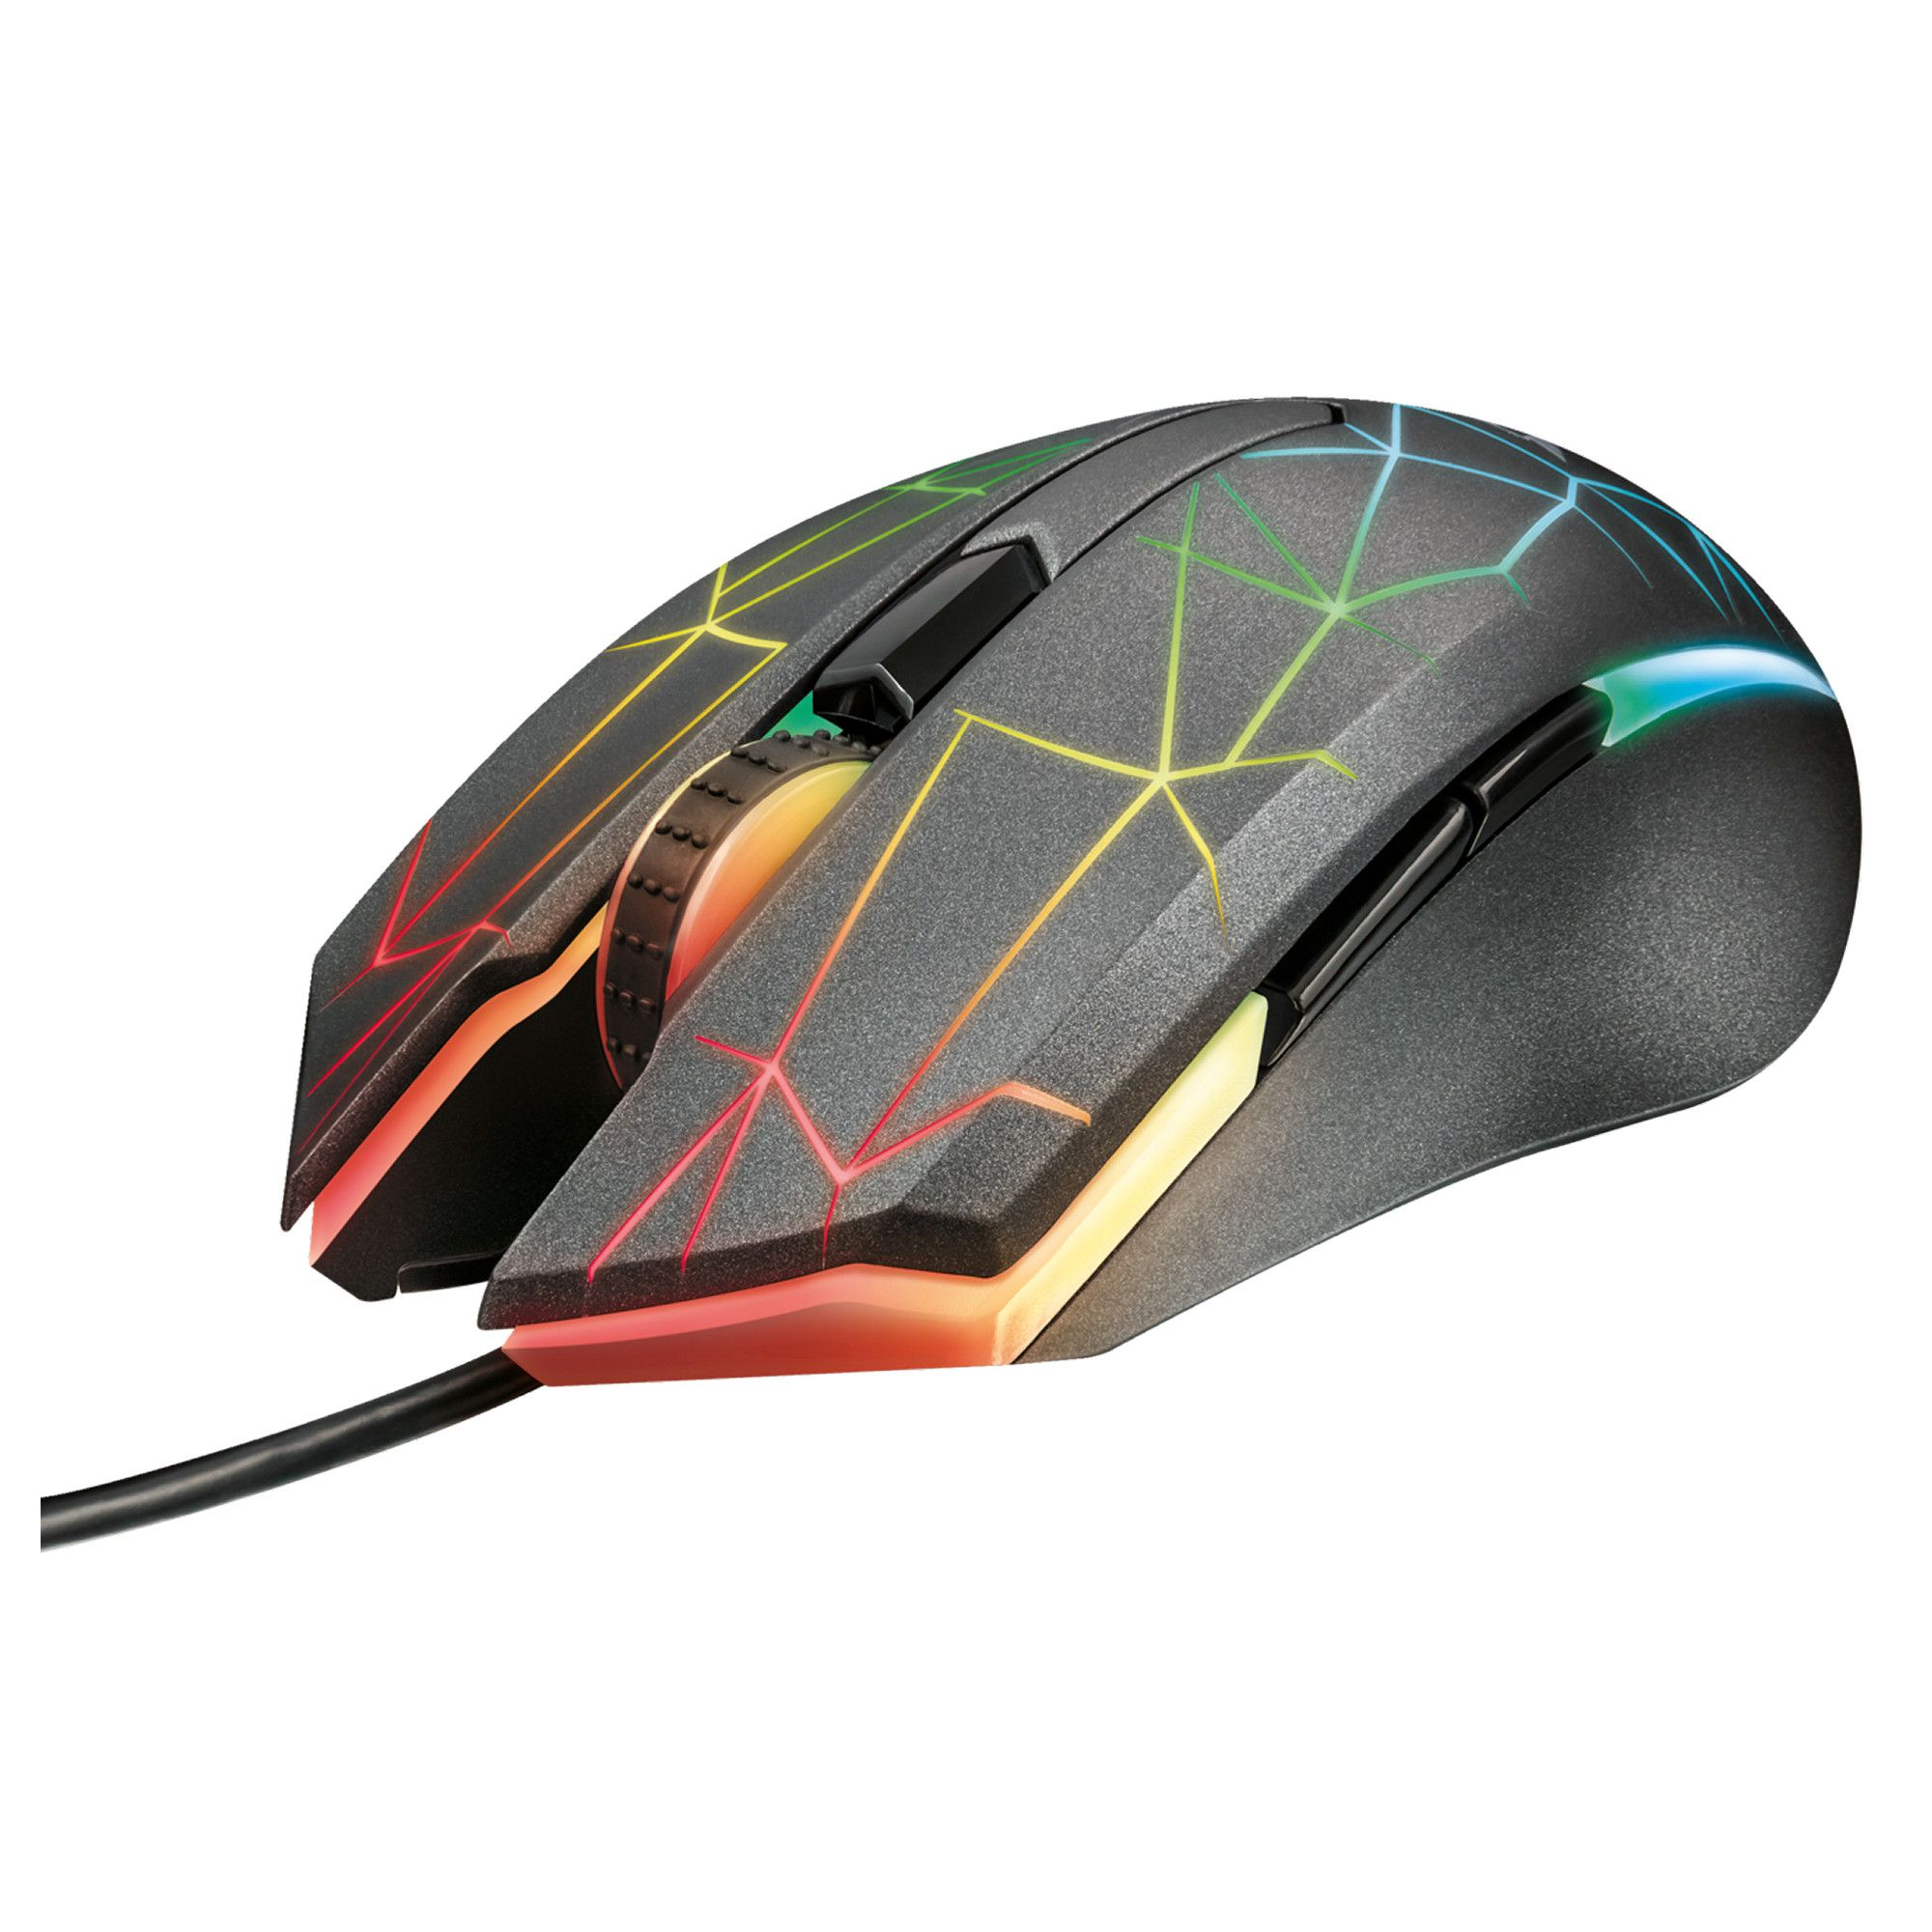 ‌ТRUST GXT 170 Heron RGB Mouse - 1